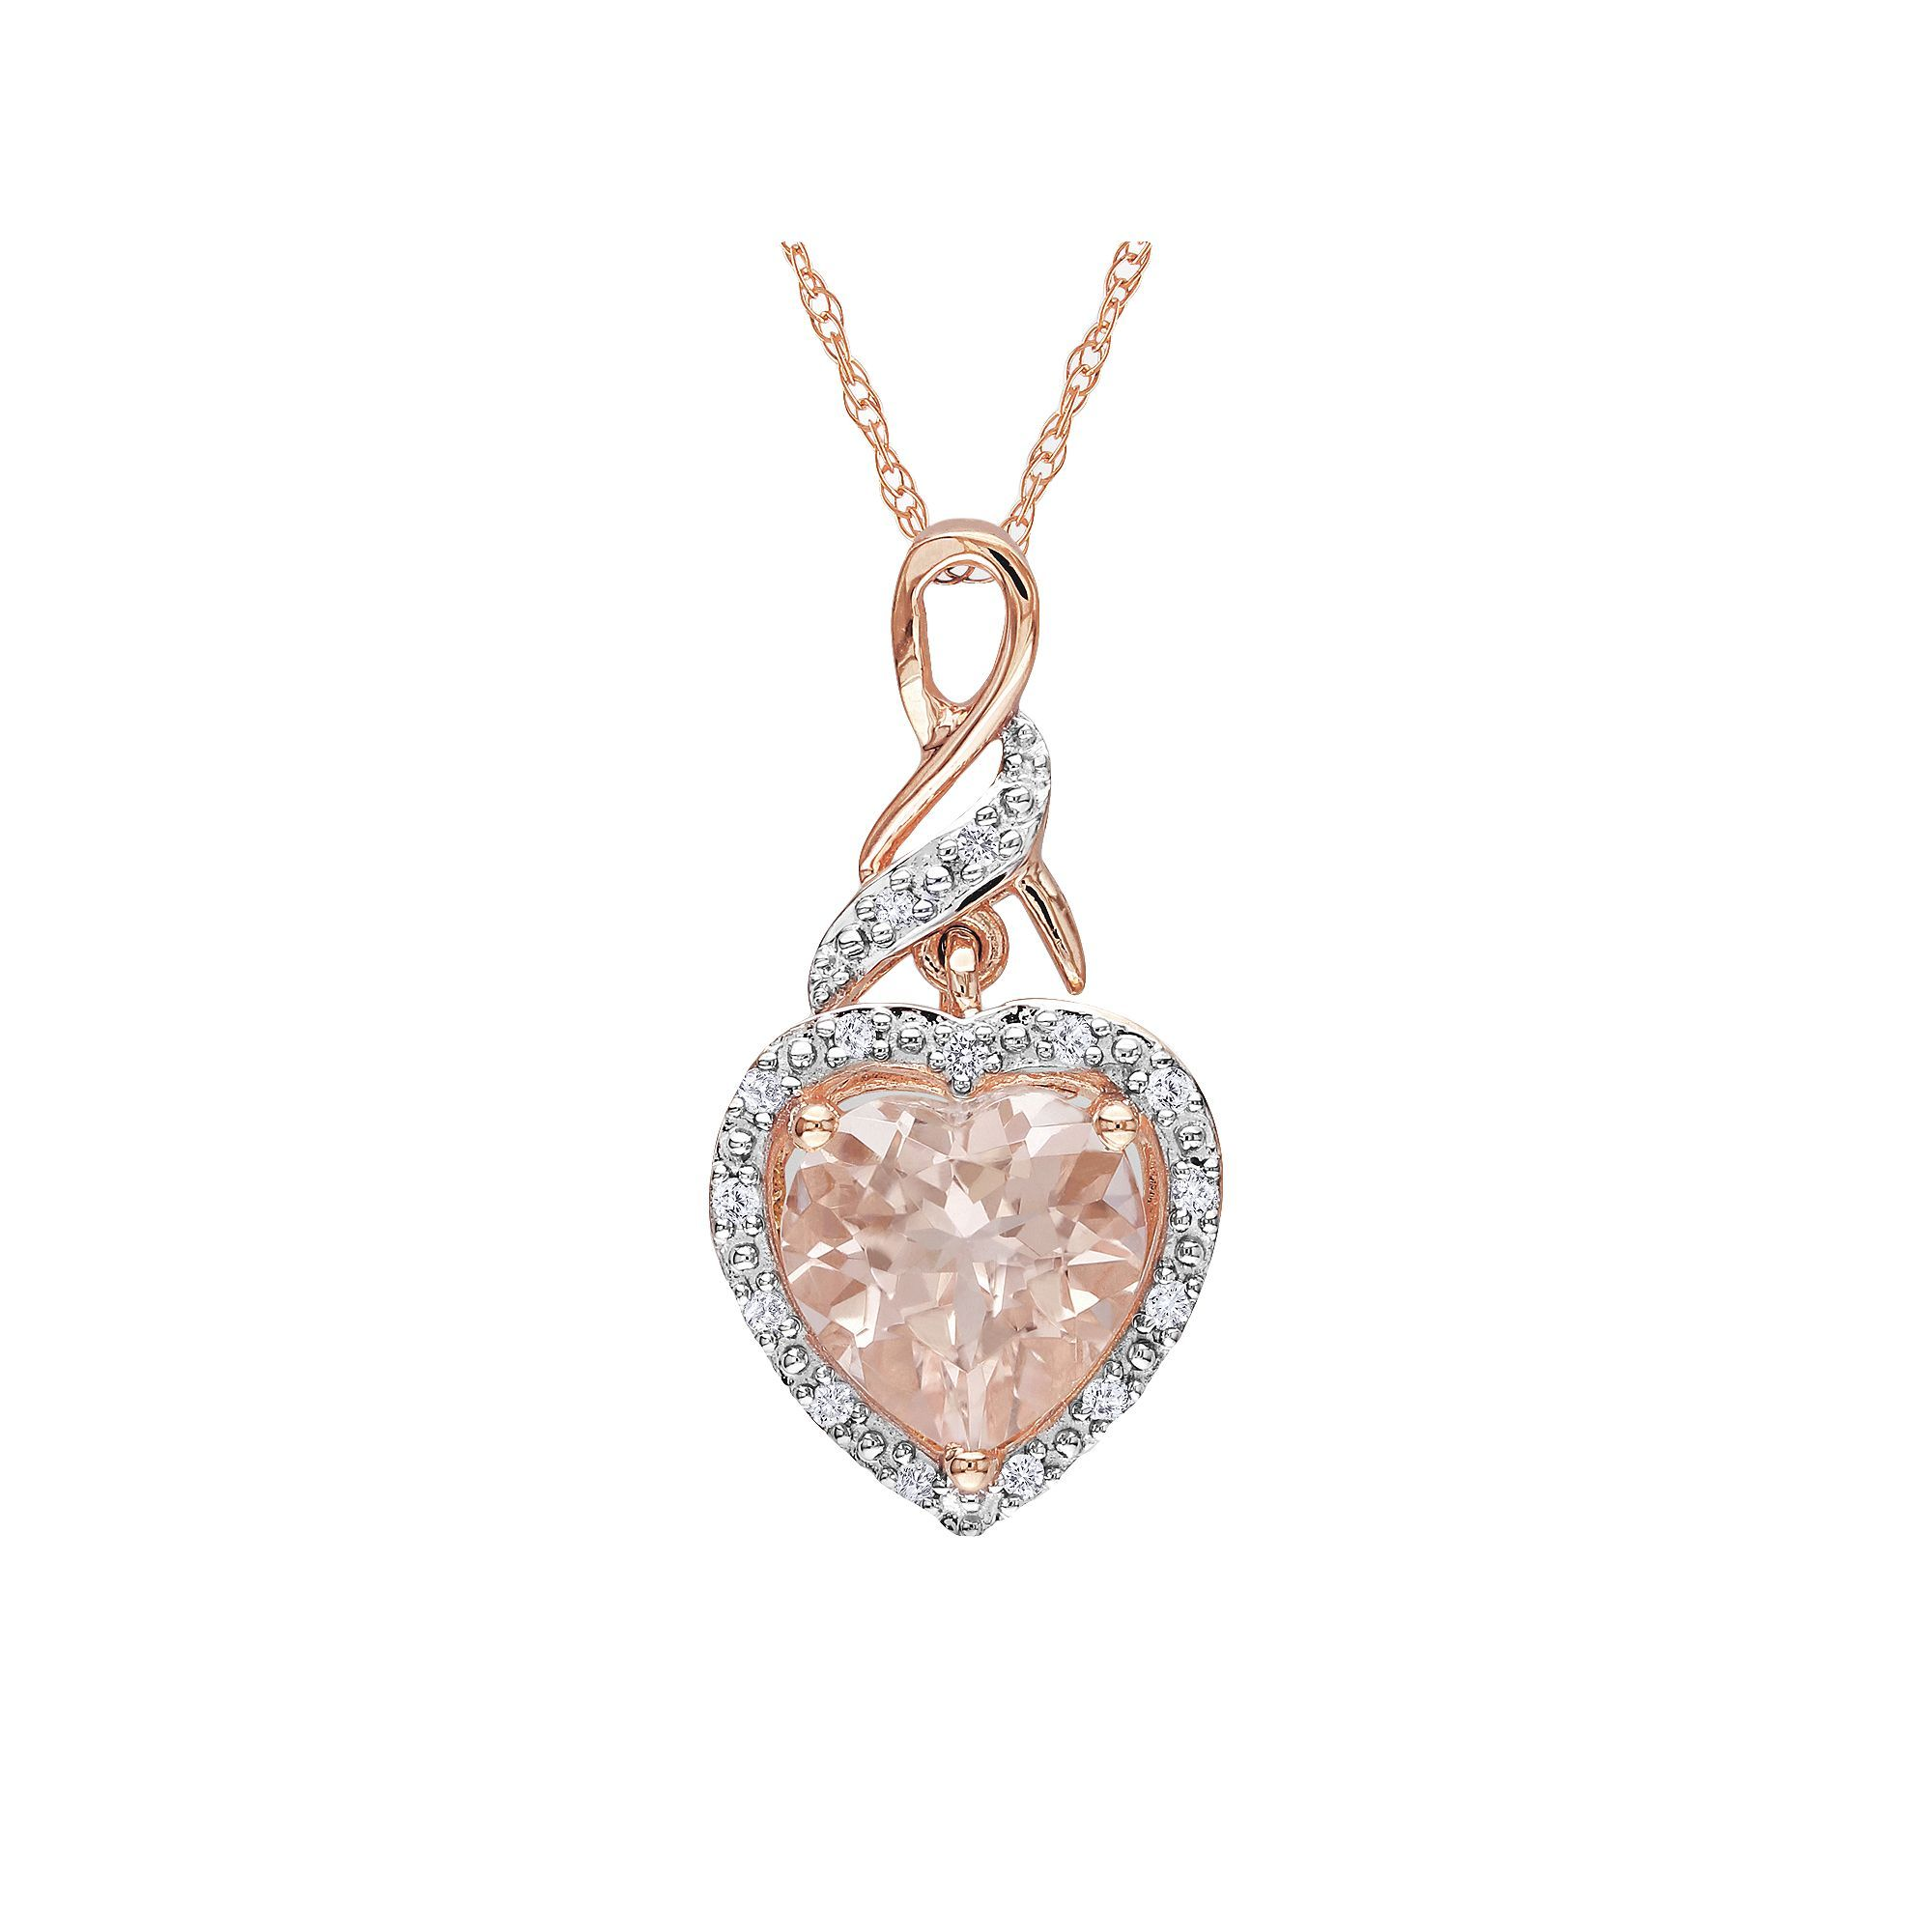 Stella grace k rose gold morganite and diamond accent heart